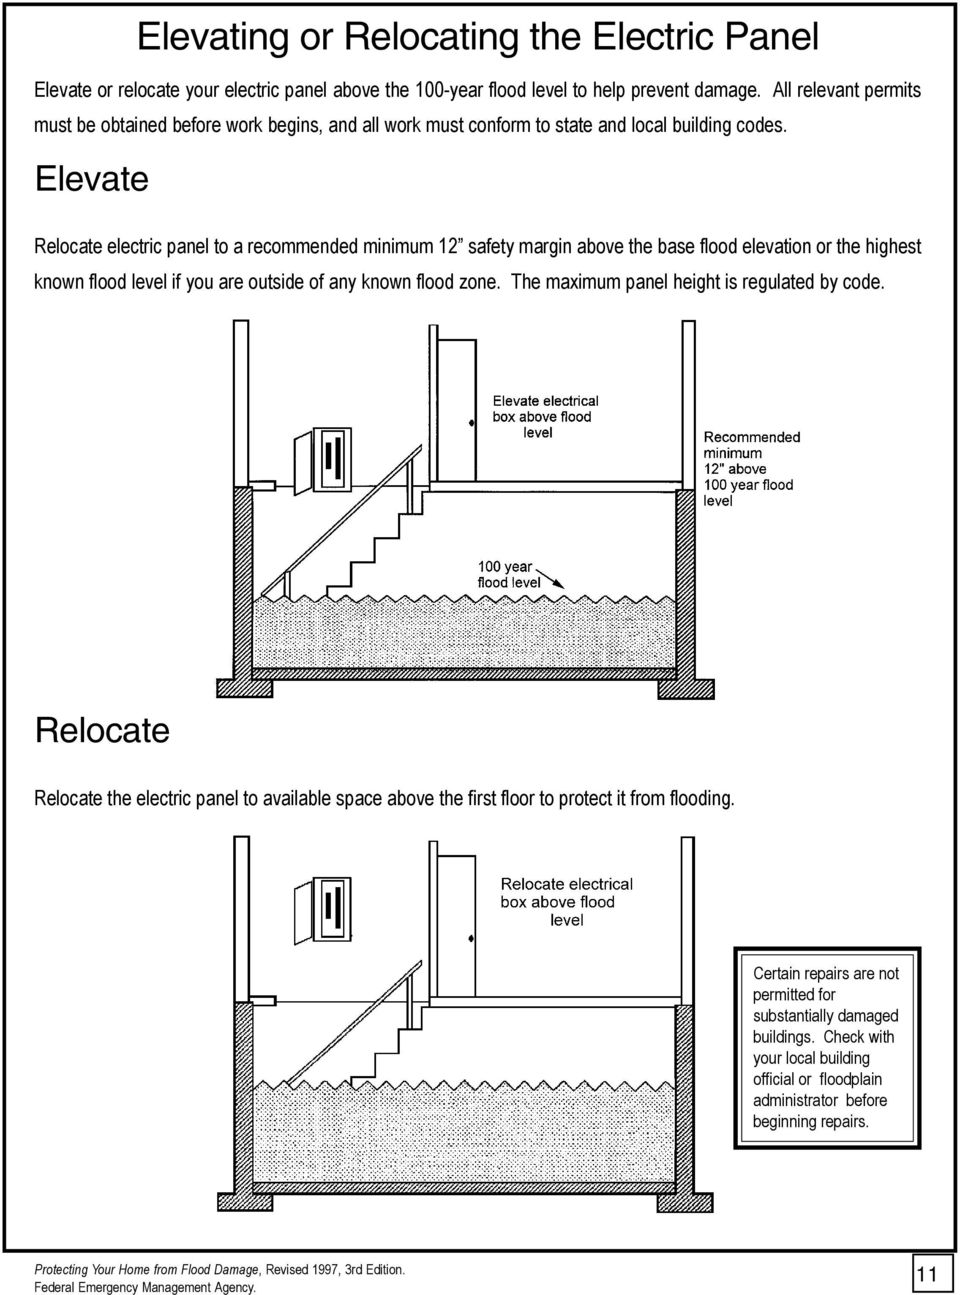 Elevate Relocate electric panel to a recommended minimum 12 safety margin above the base flood elevation or the highest known flood level if you are outside of any known flood zone.